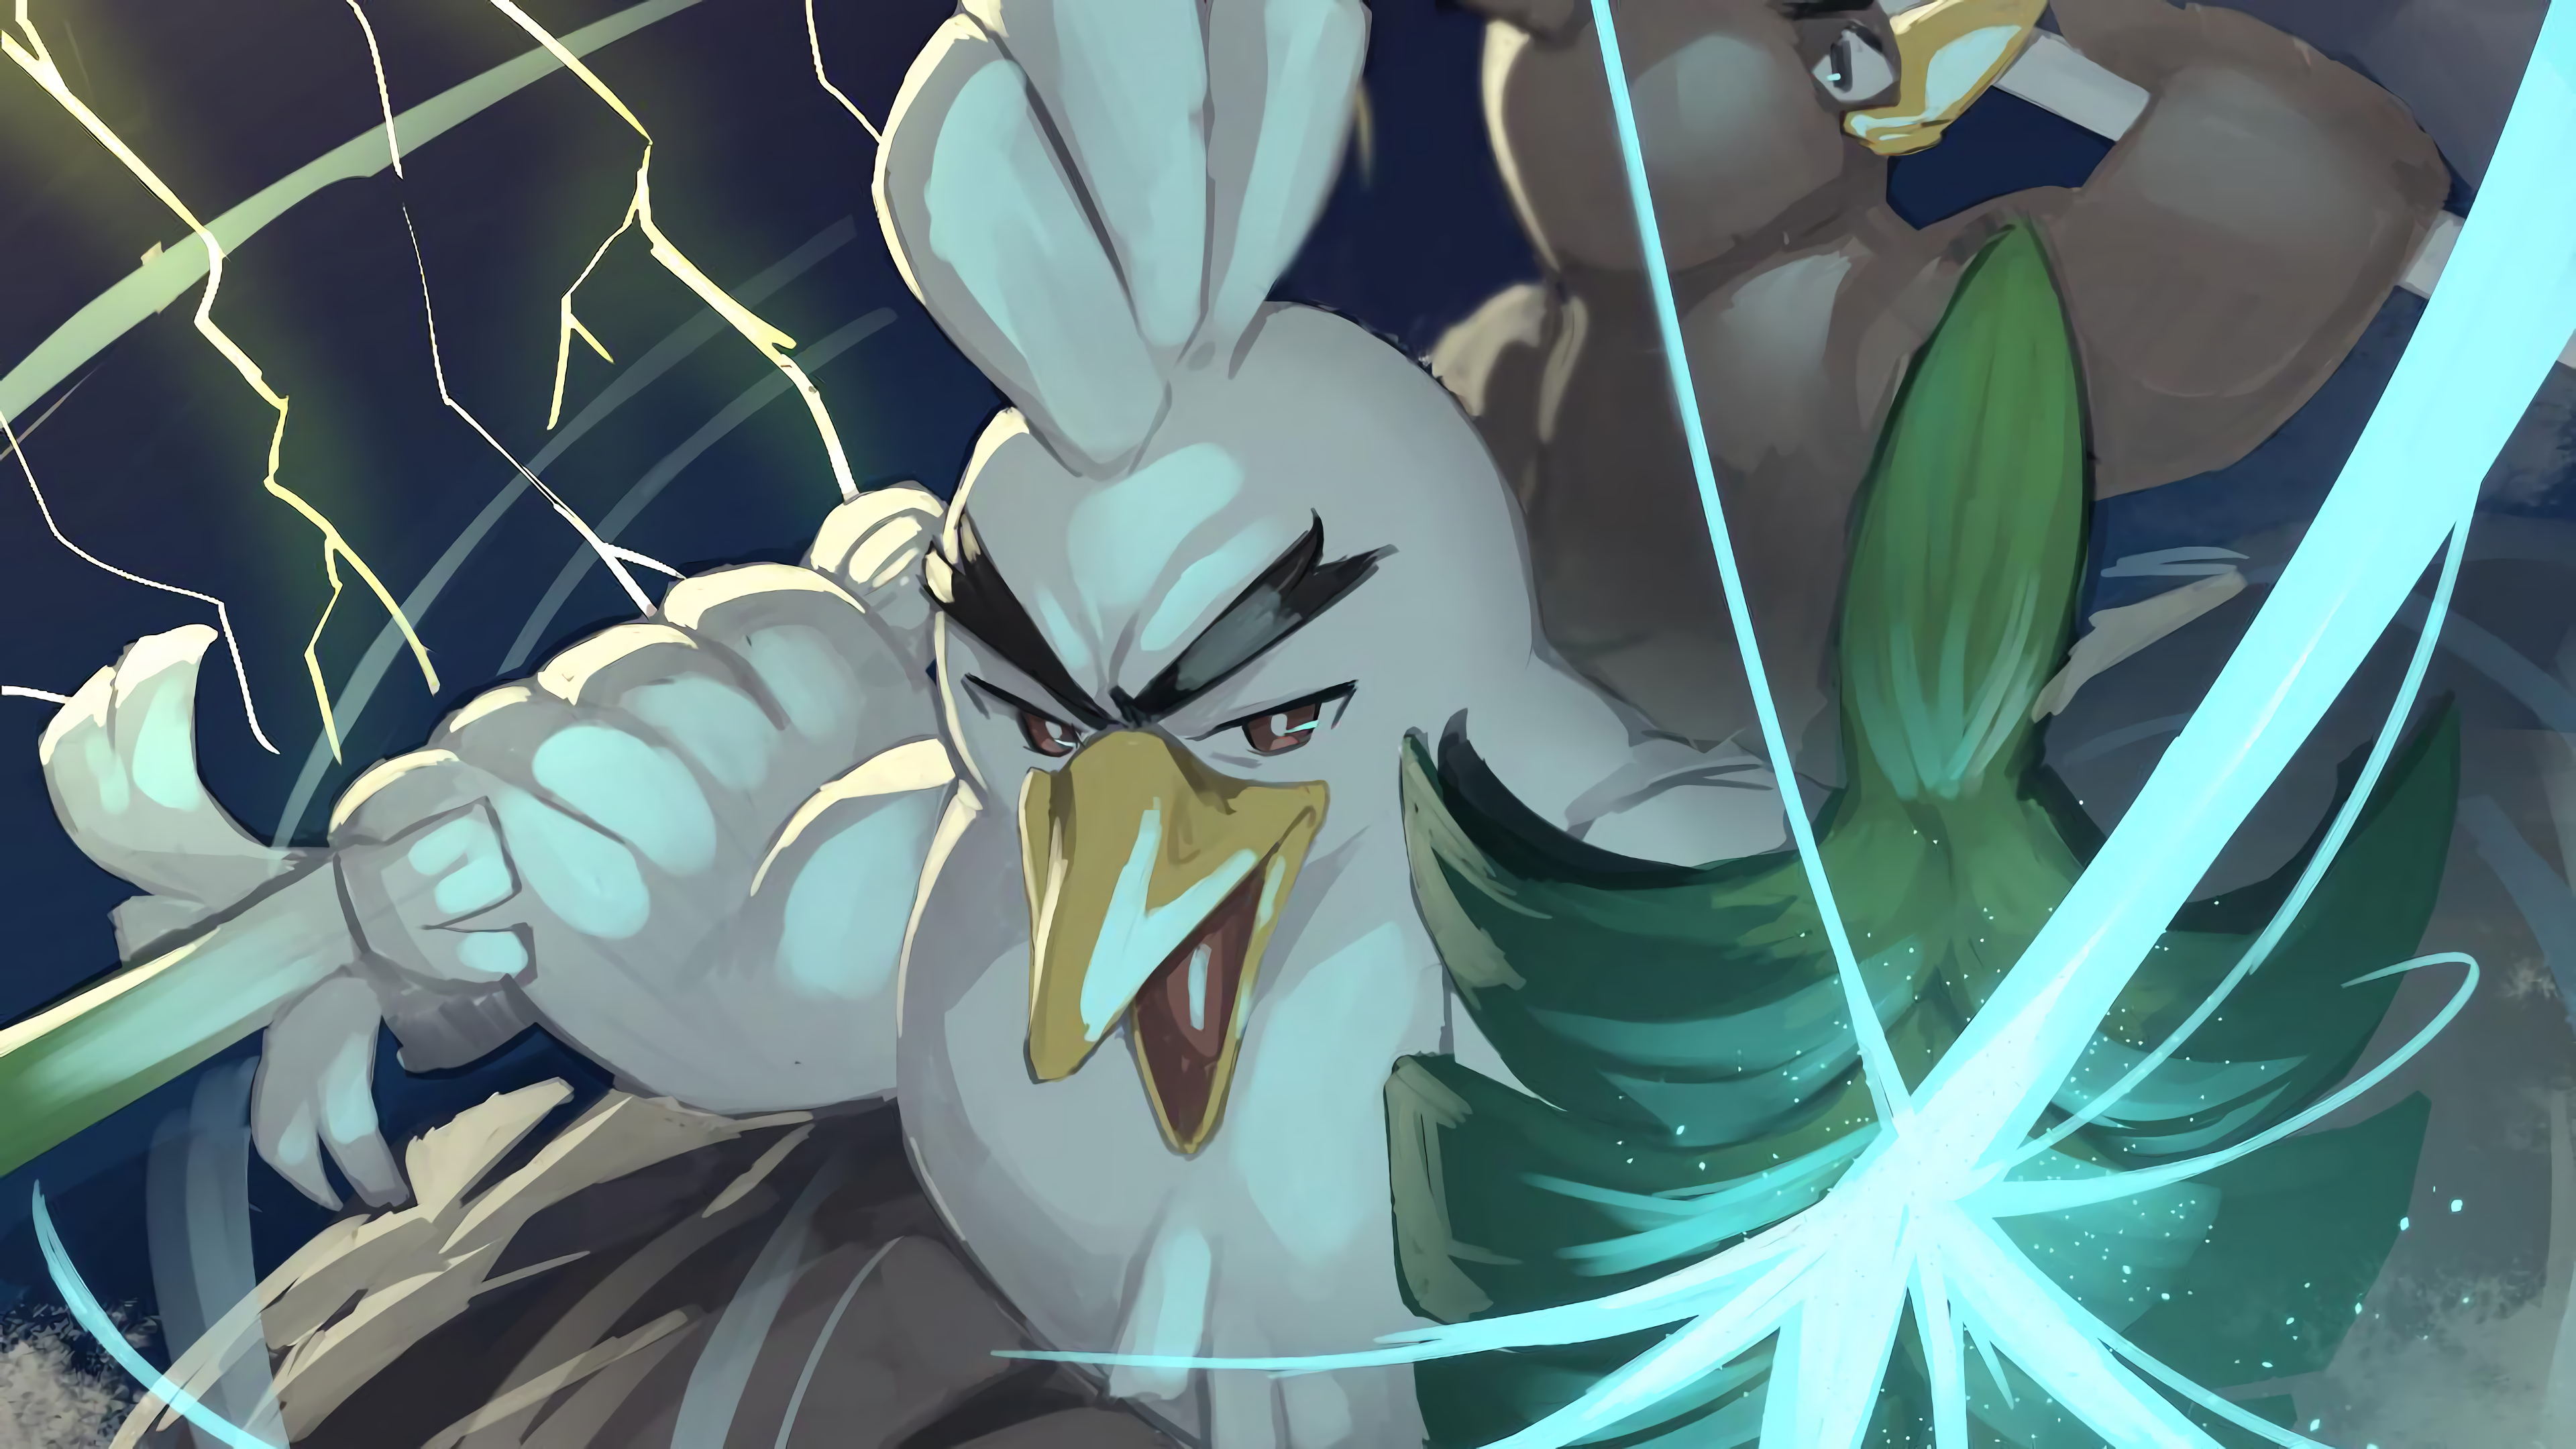 Anime Wallpaper Sirfetch'd from Pokemon Sword and Shield